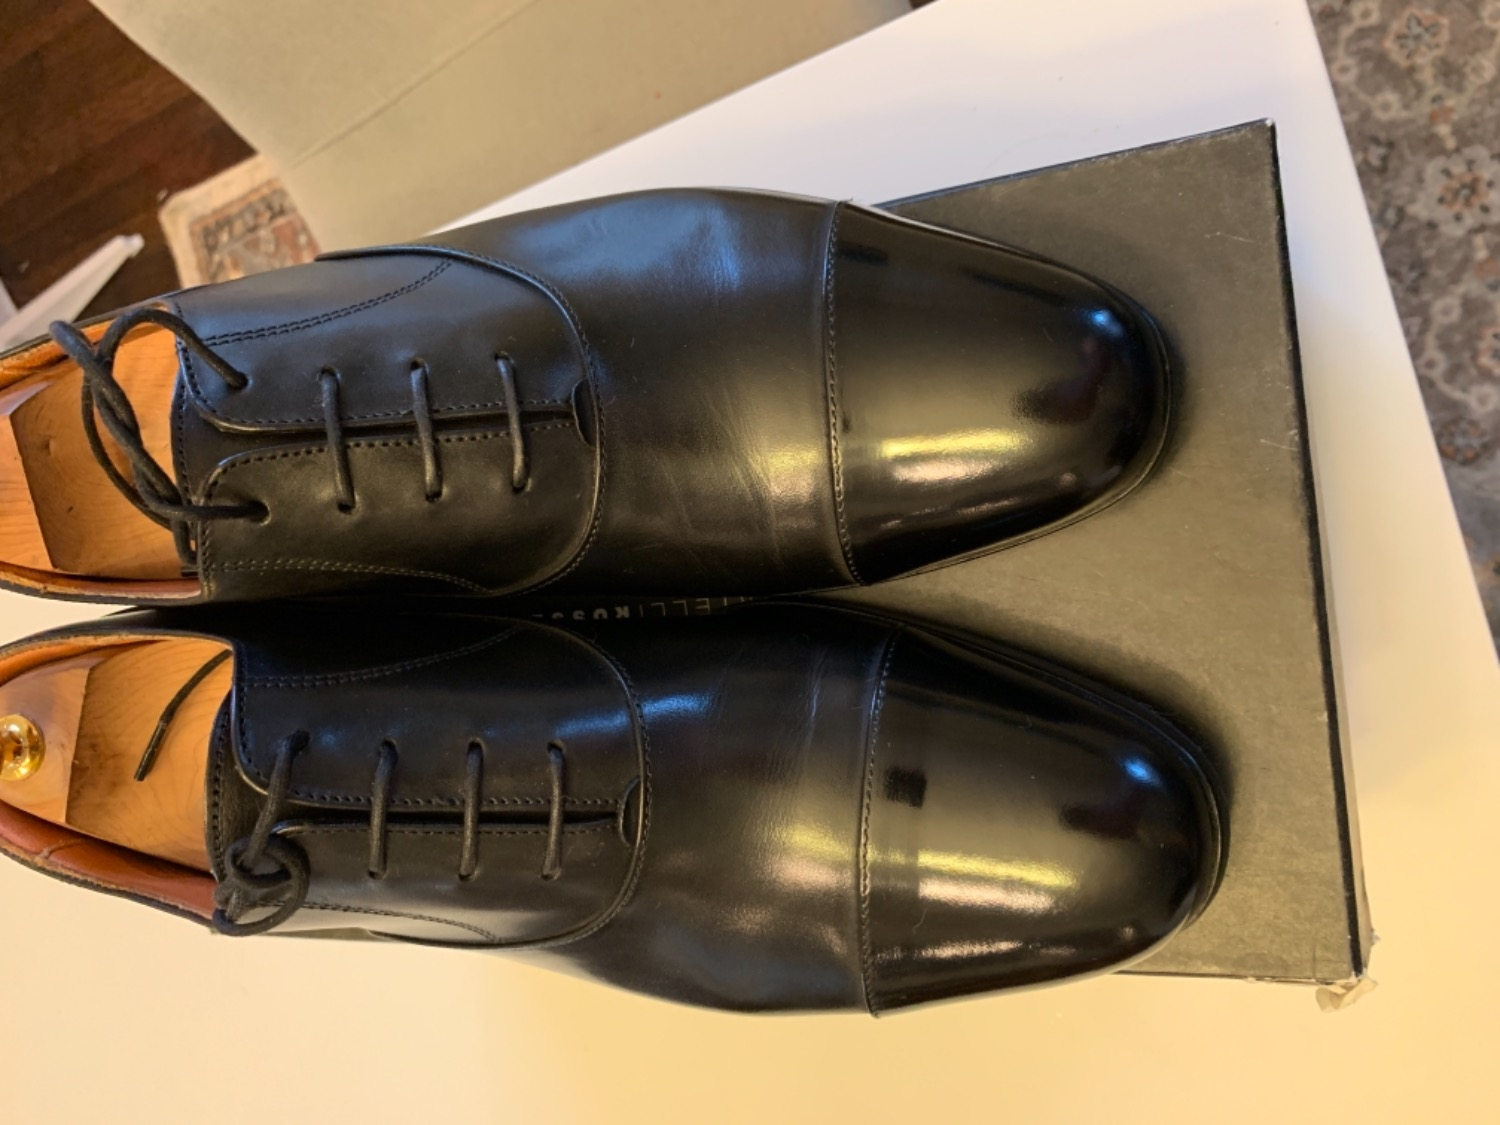 21f2748a019 Fantastic shoes. Make em  beautiful with a bit of polish and you ll have  professional attire you can run around the city all day in without ever  giving your ...